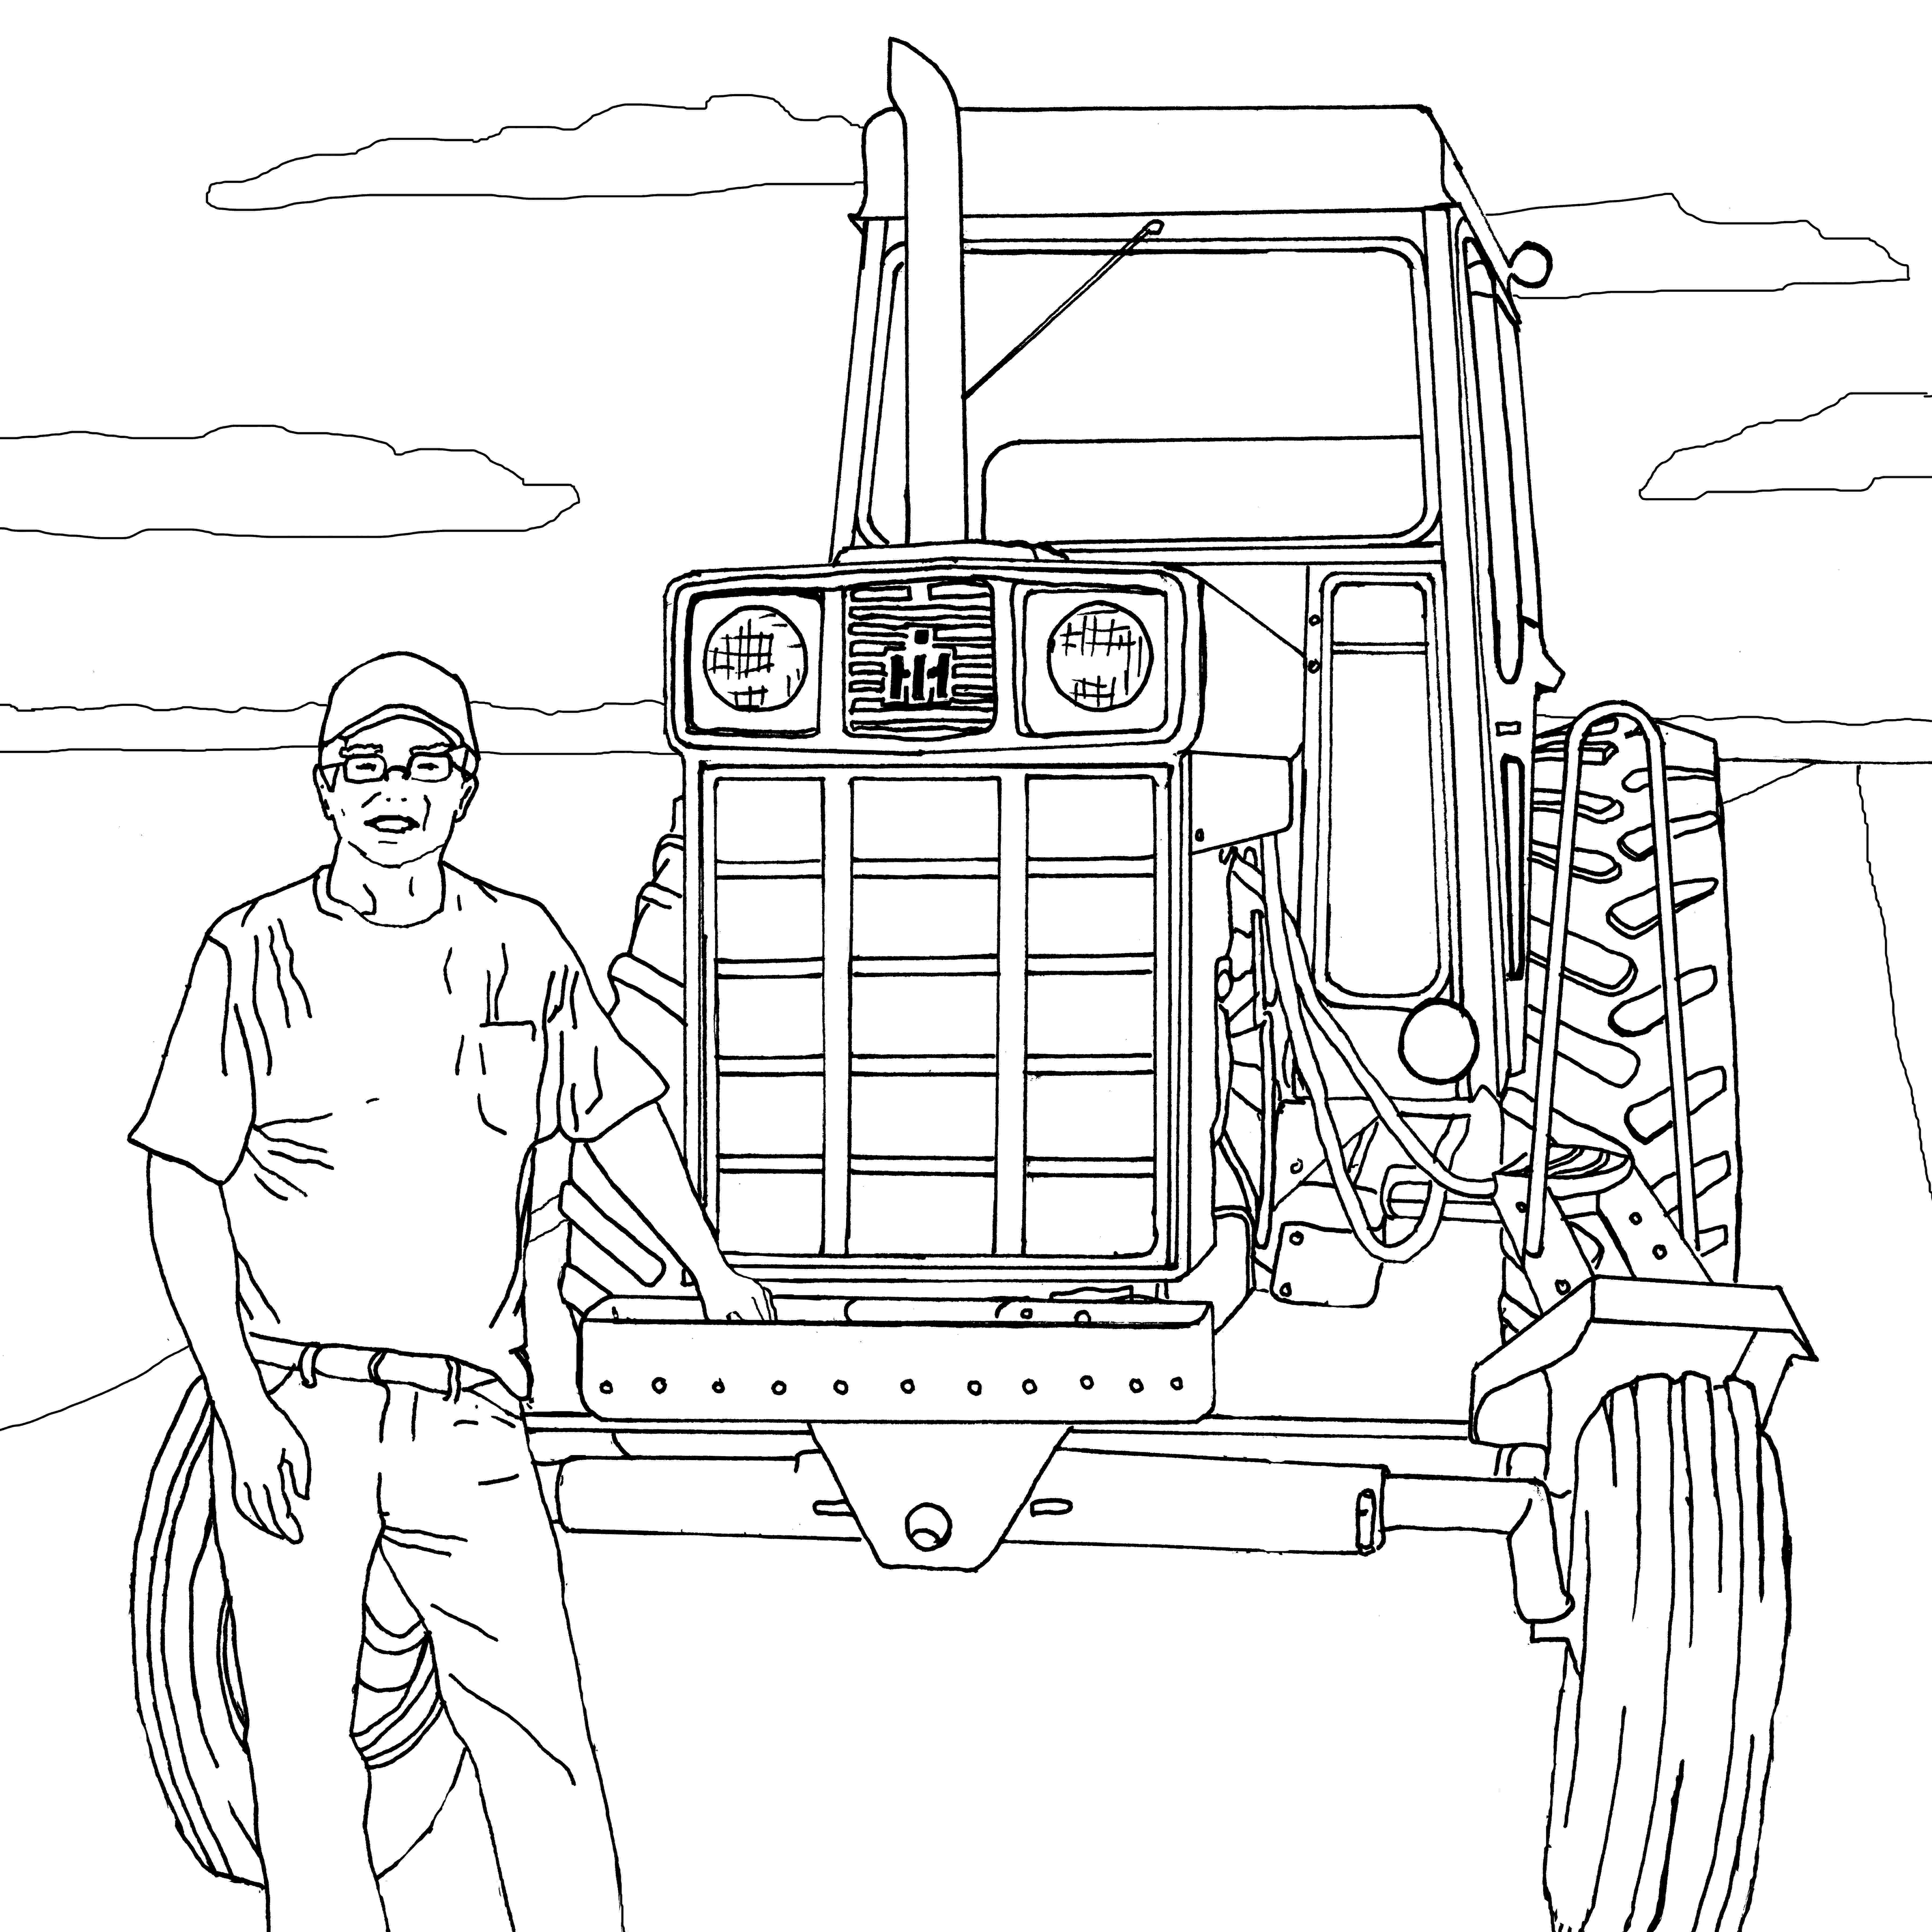 tractor coloring sheet john deere tractor coloring pages tractors and coloring tractor sheet